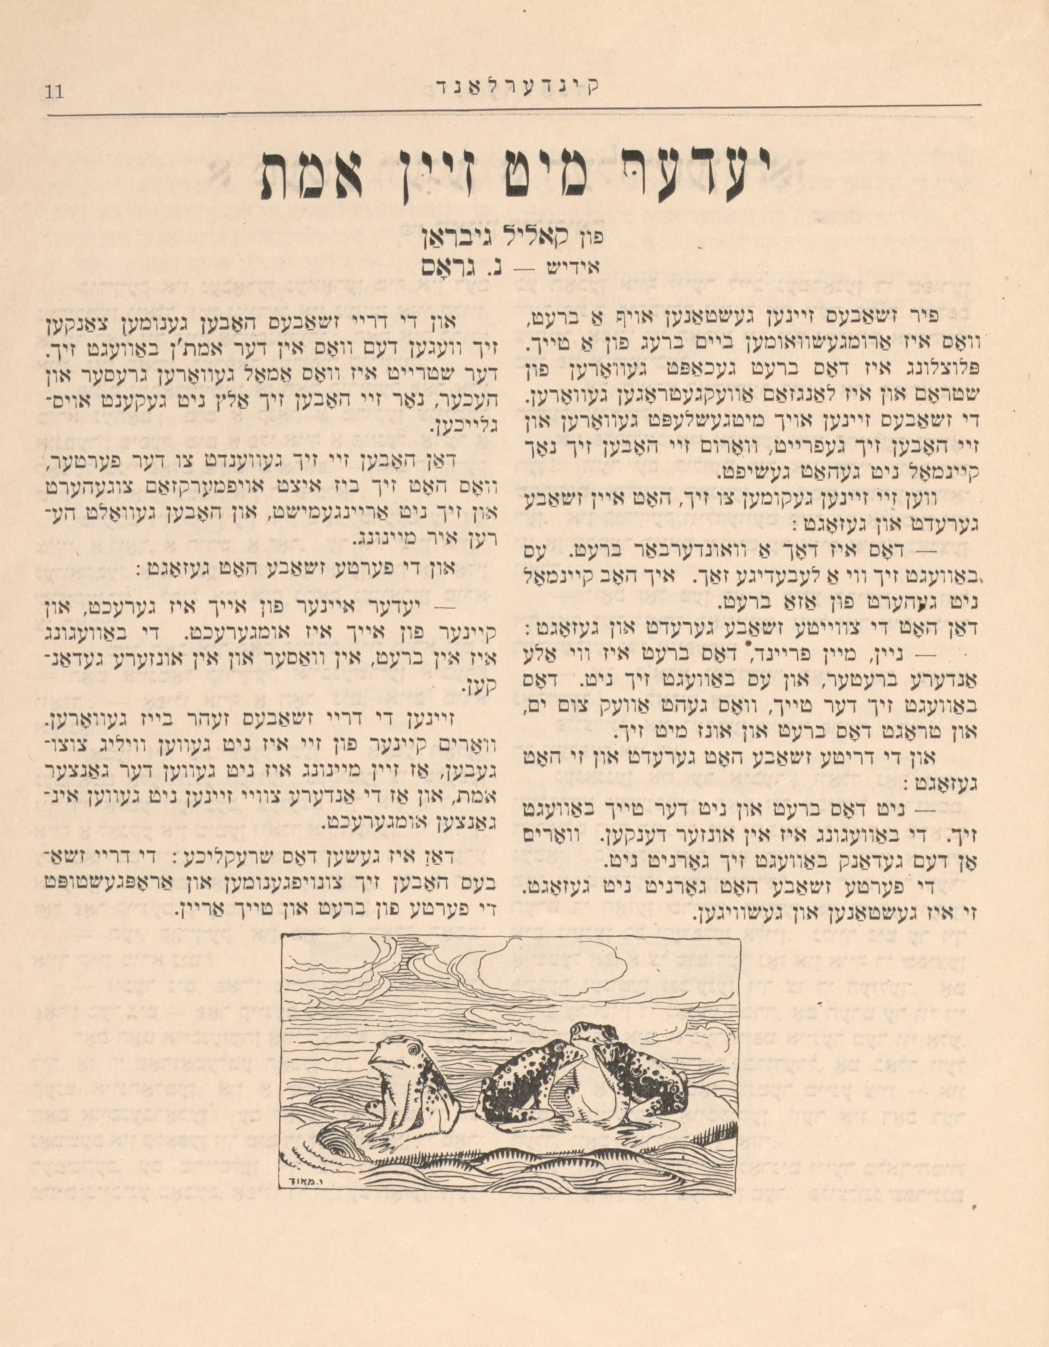 Each One and his Truth by Kahlil Gibran, translated into Yiddish by Naftali Gross, Kinderland, Vol. 1, No. 4, April, 1921, p. 11.